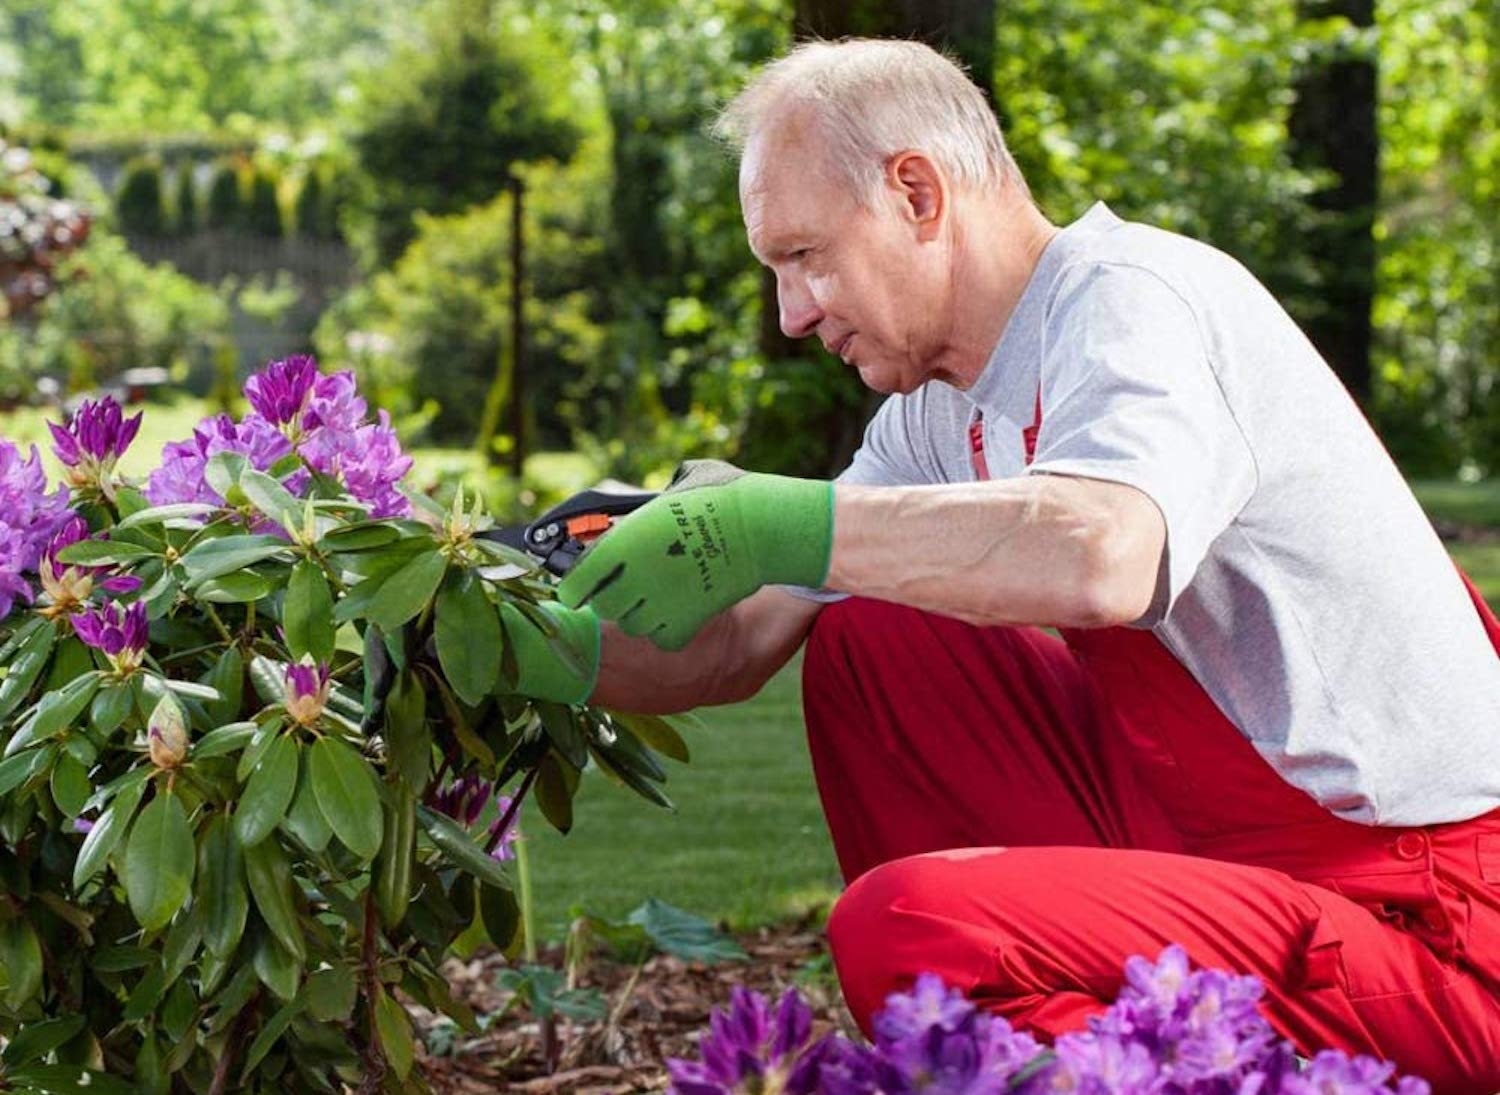 A man kneels to prune a flowering plant; he wears a pair of green gloves